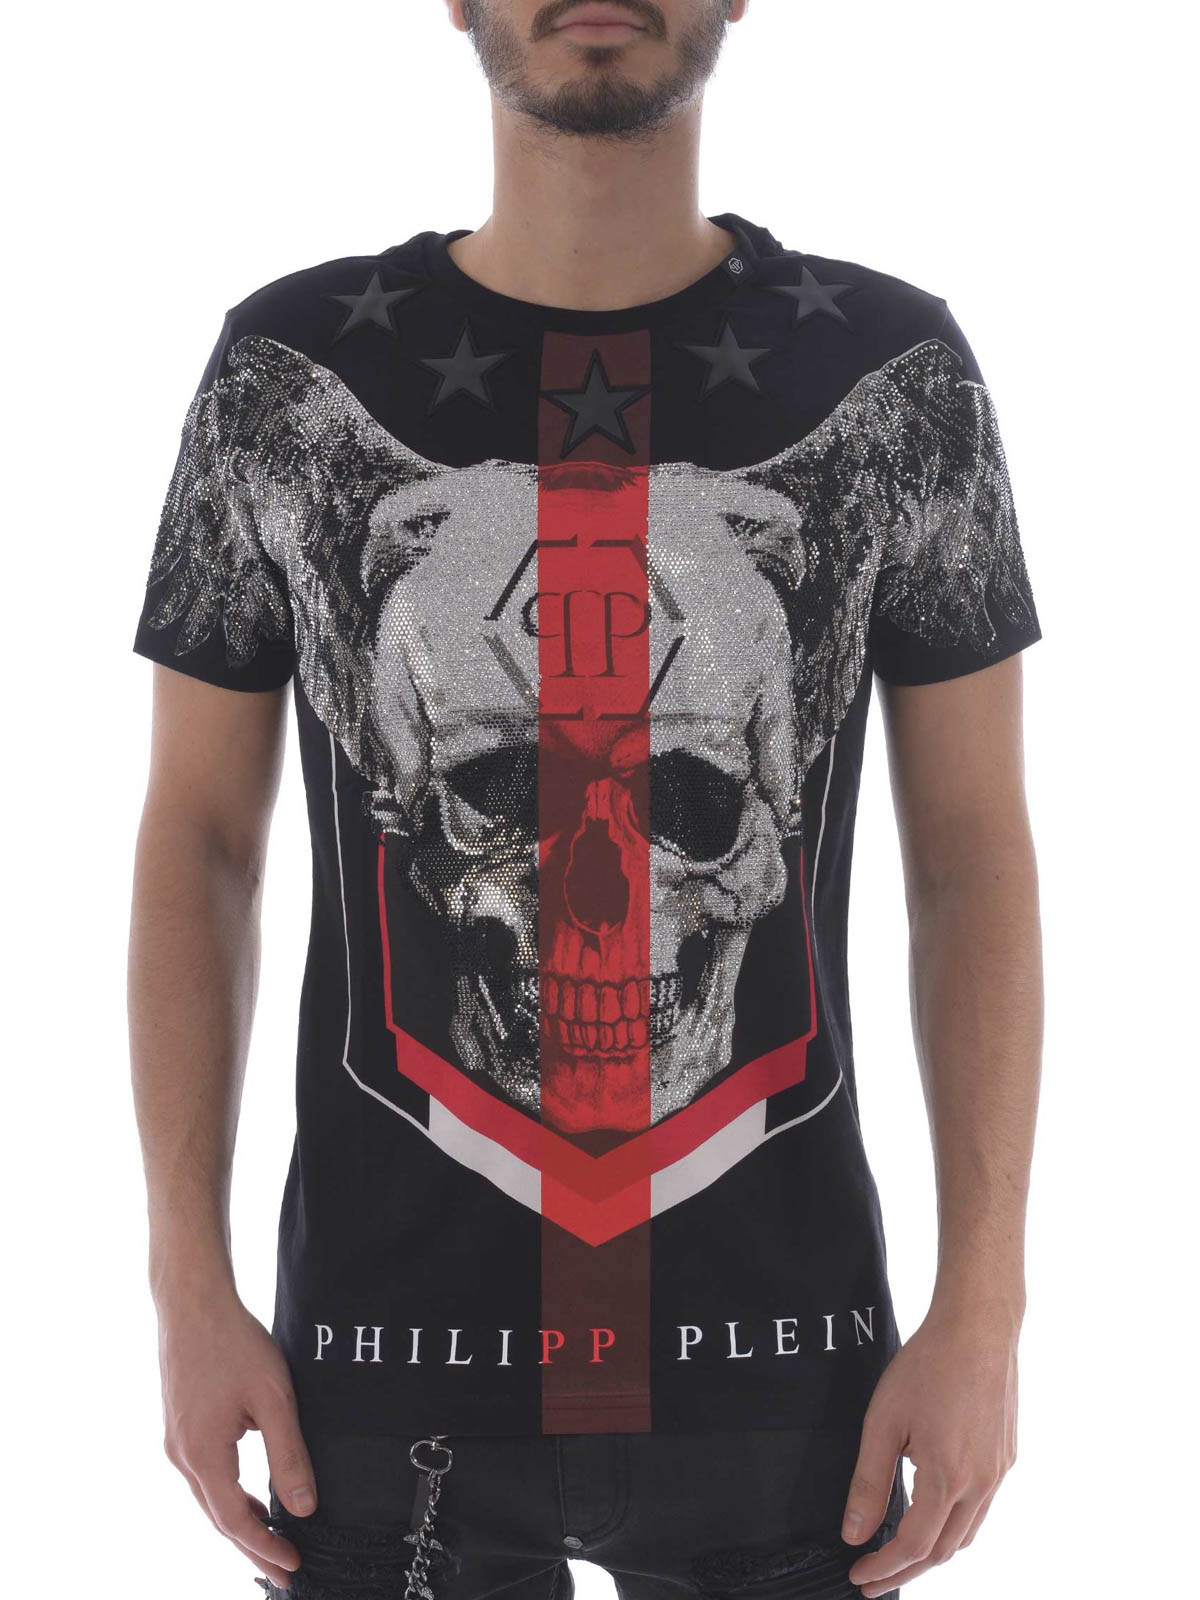 philipp plein church 39 s black t shirt t shirts mtk1896pjy002n0213